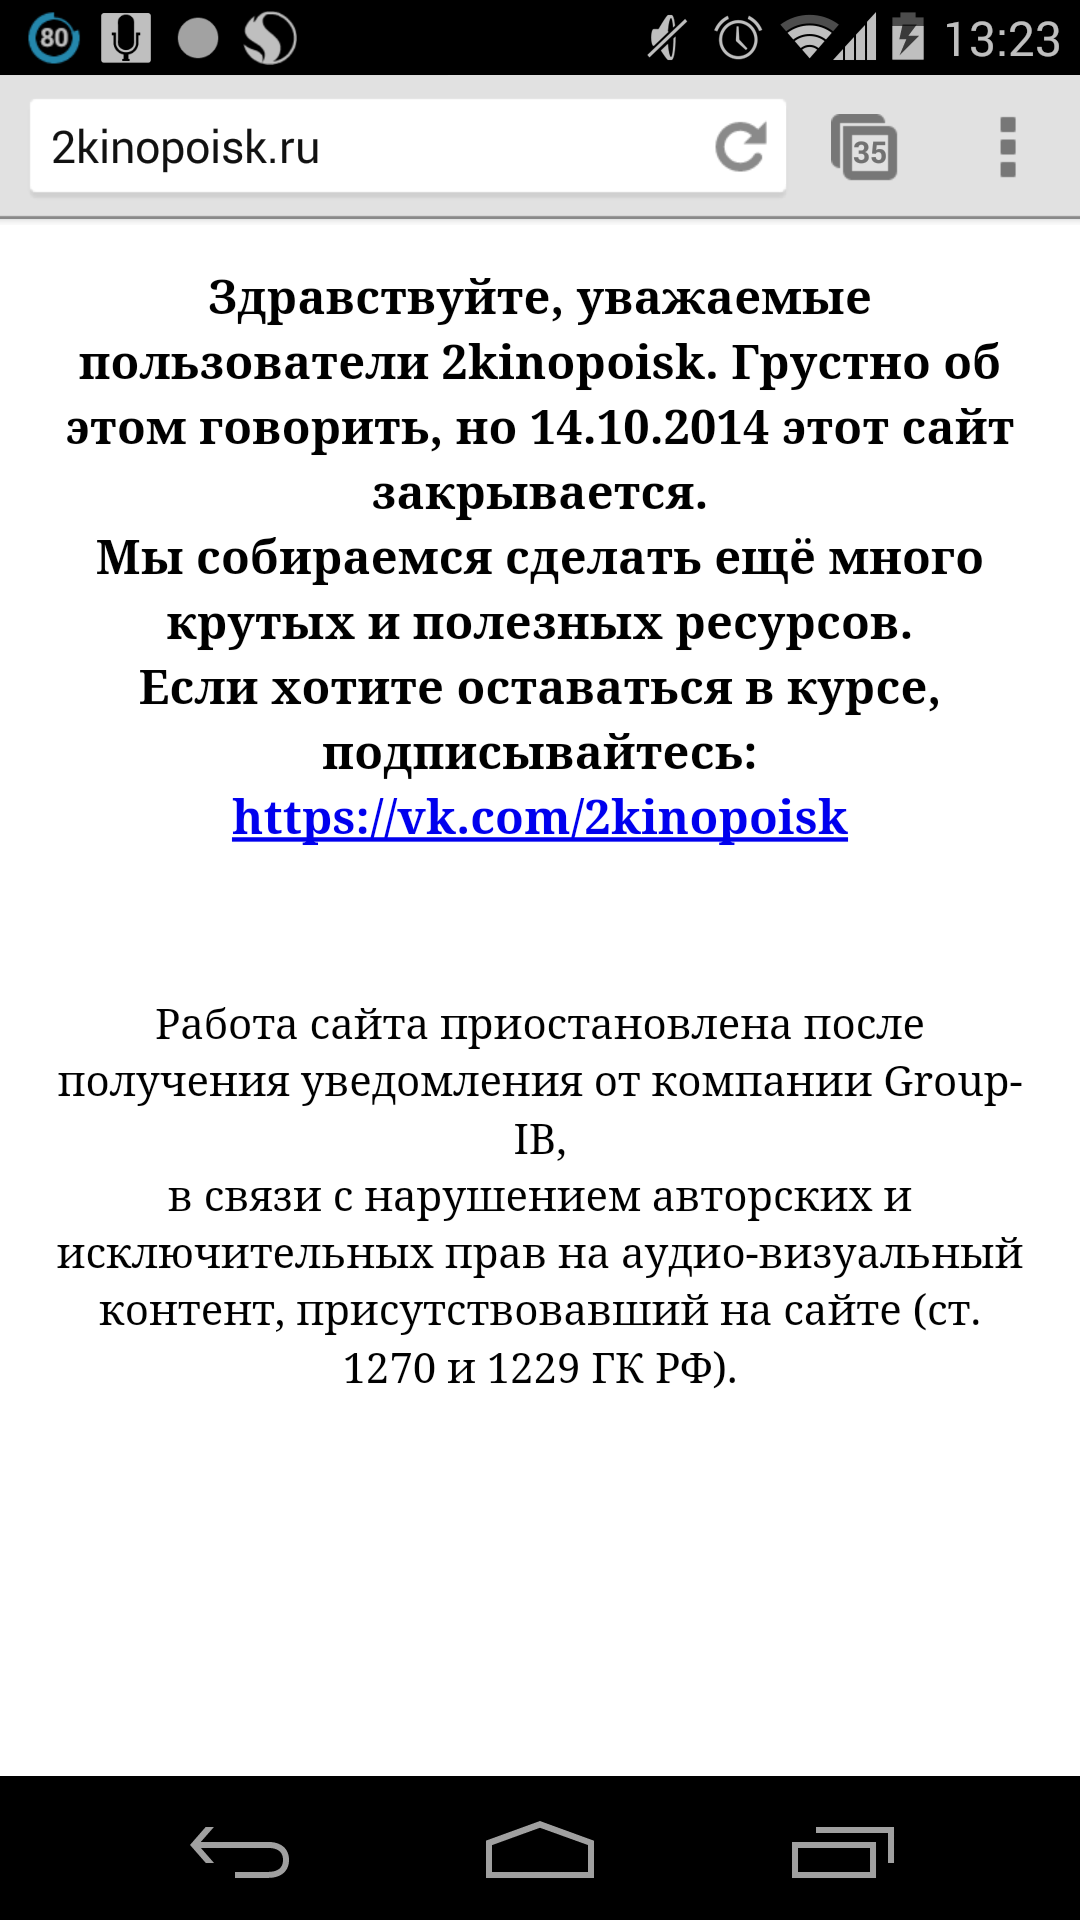 2kinopoisk.ru — anti-piracy, Group-IB